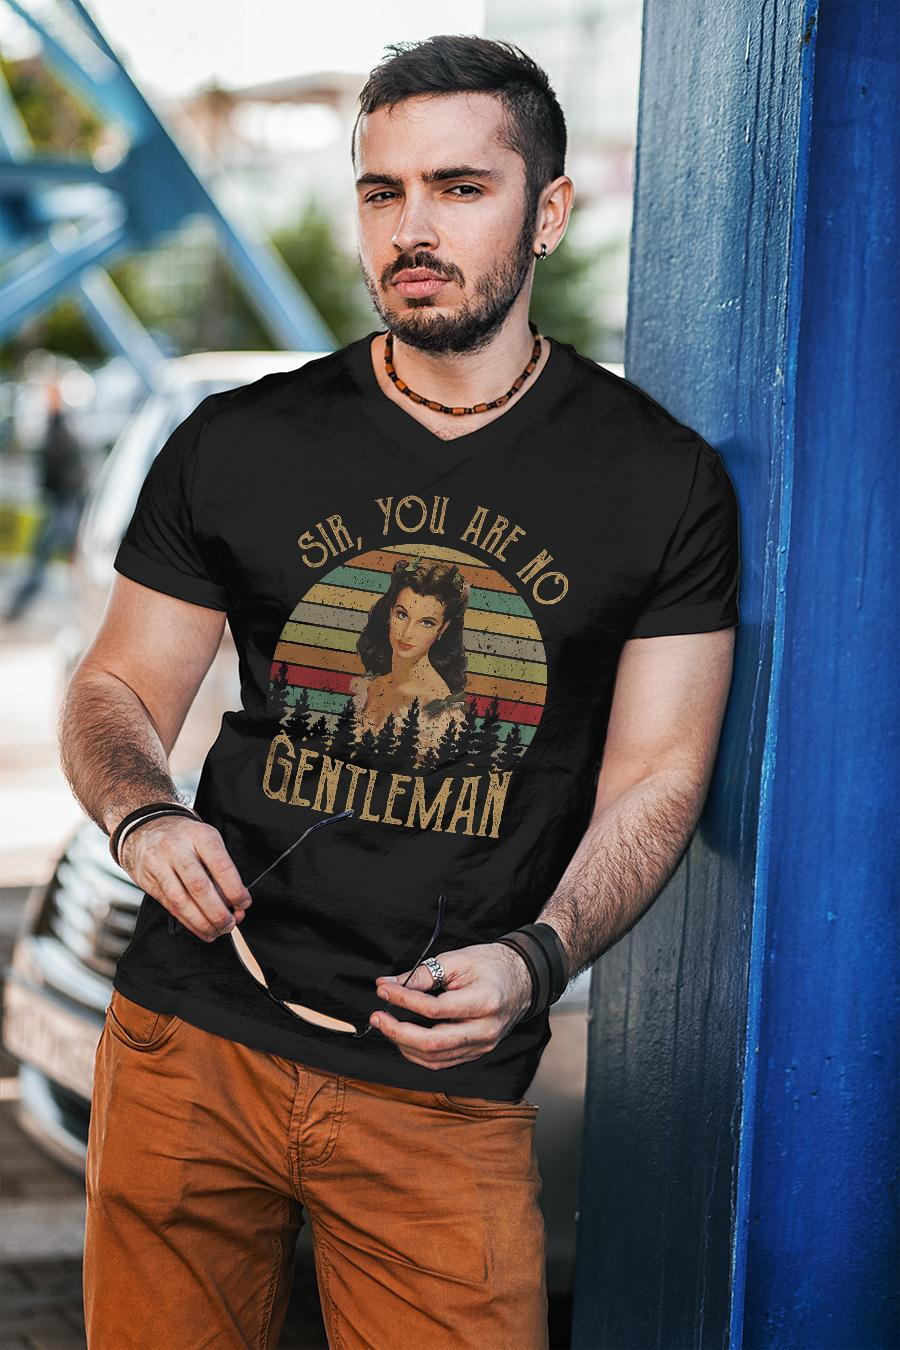 Sir You Are No Gentleman shirt unisex